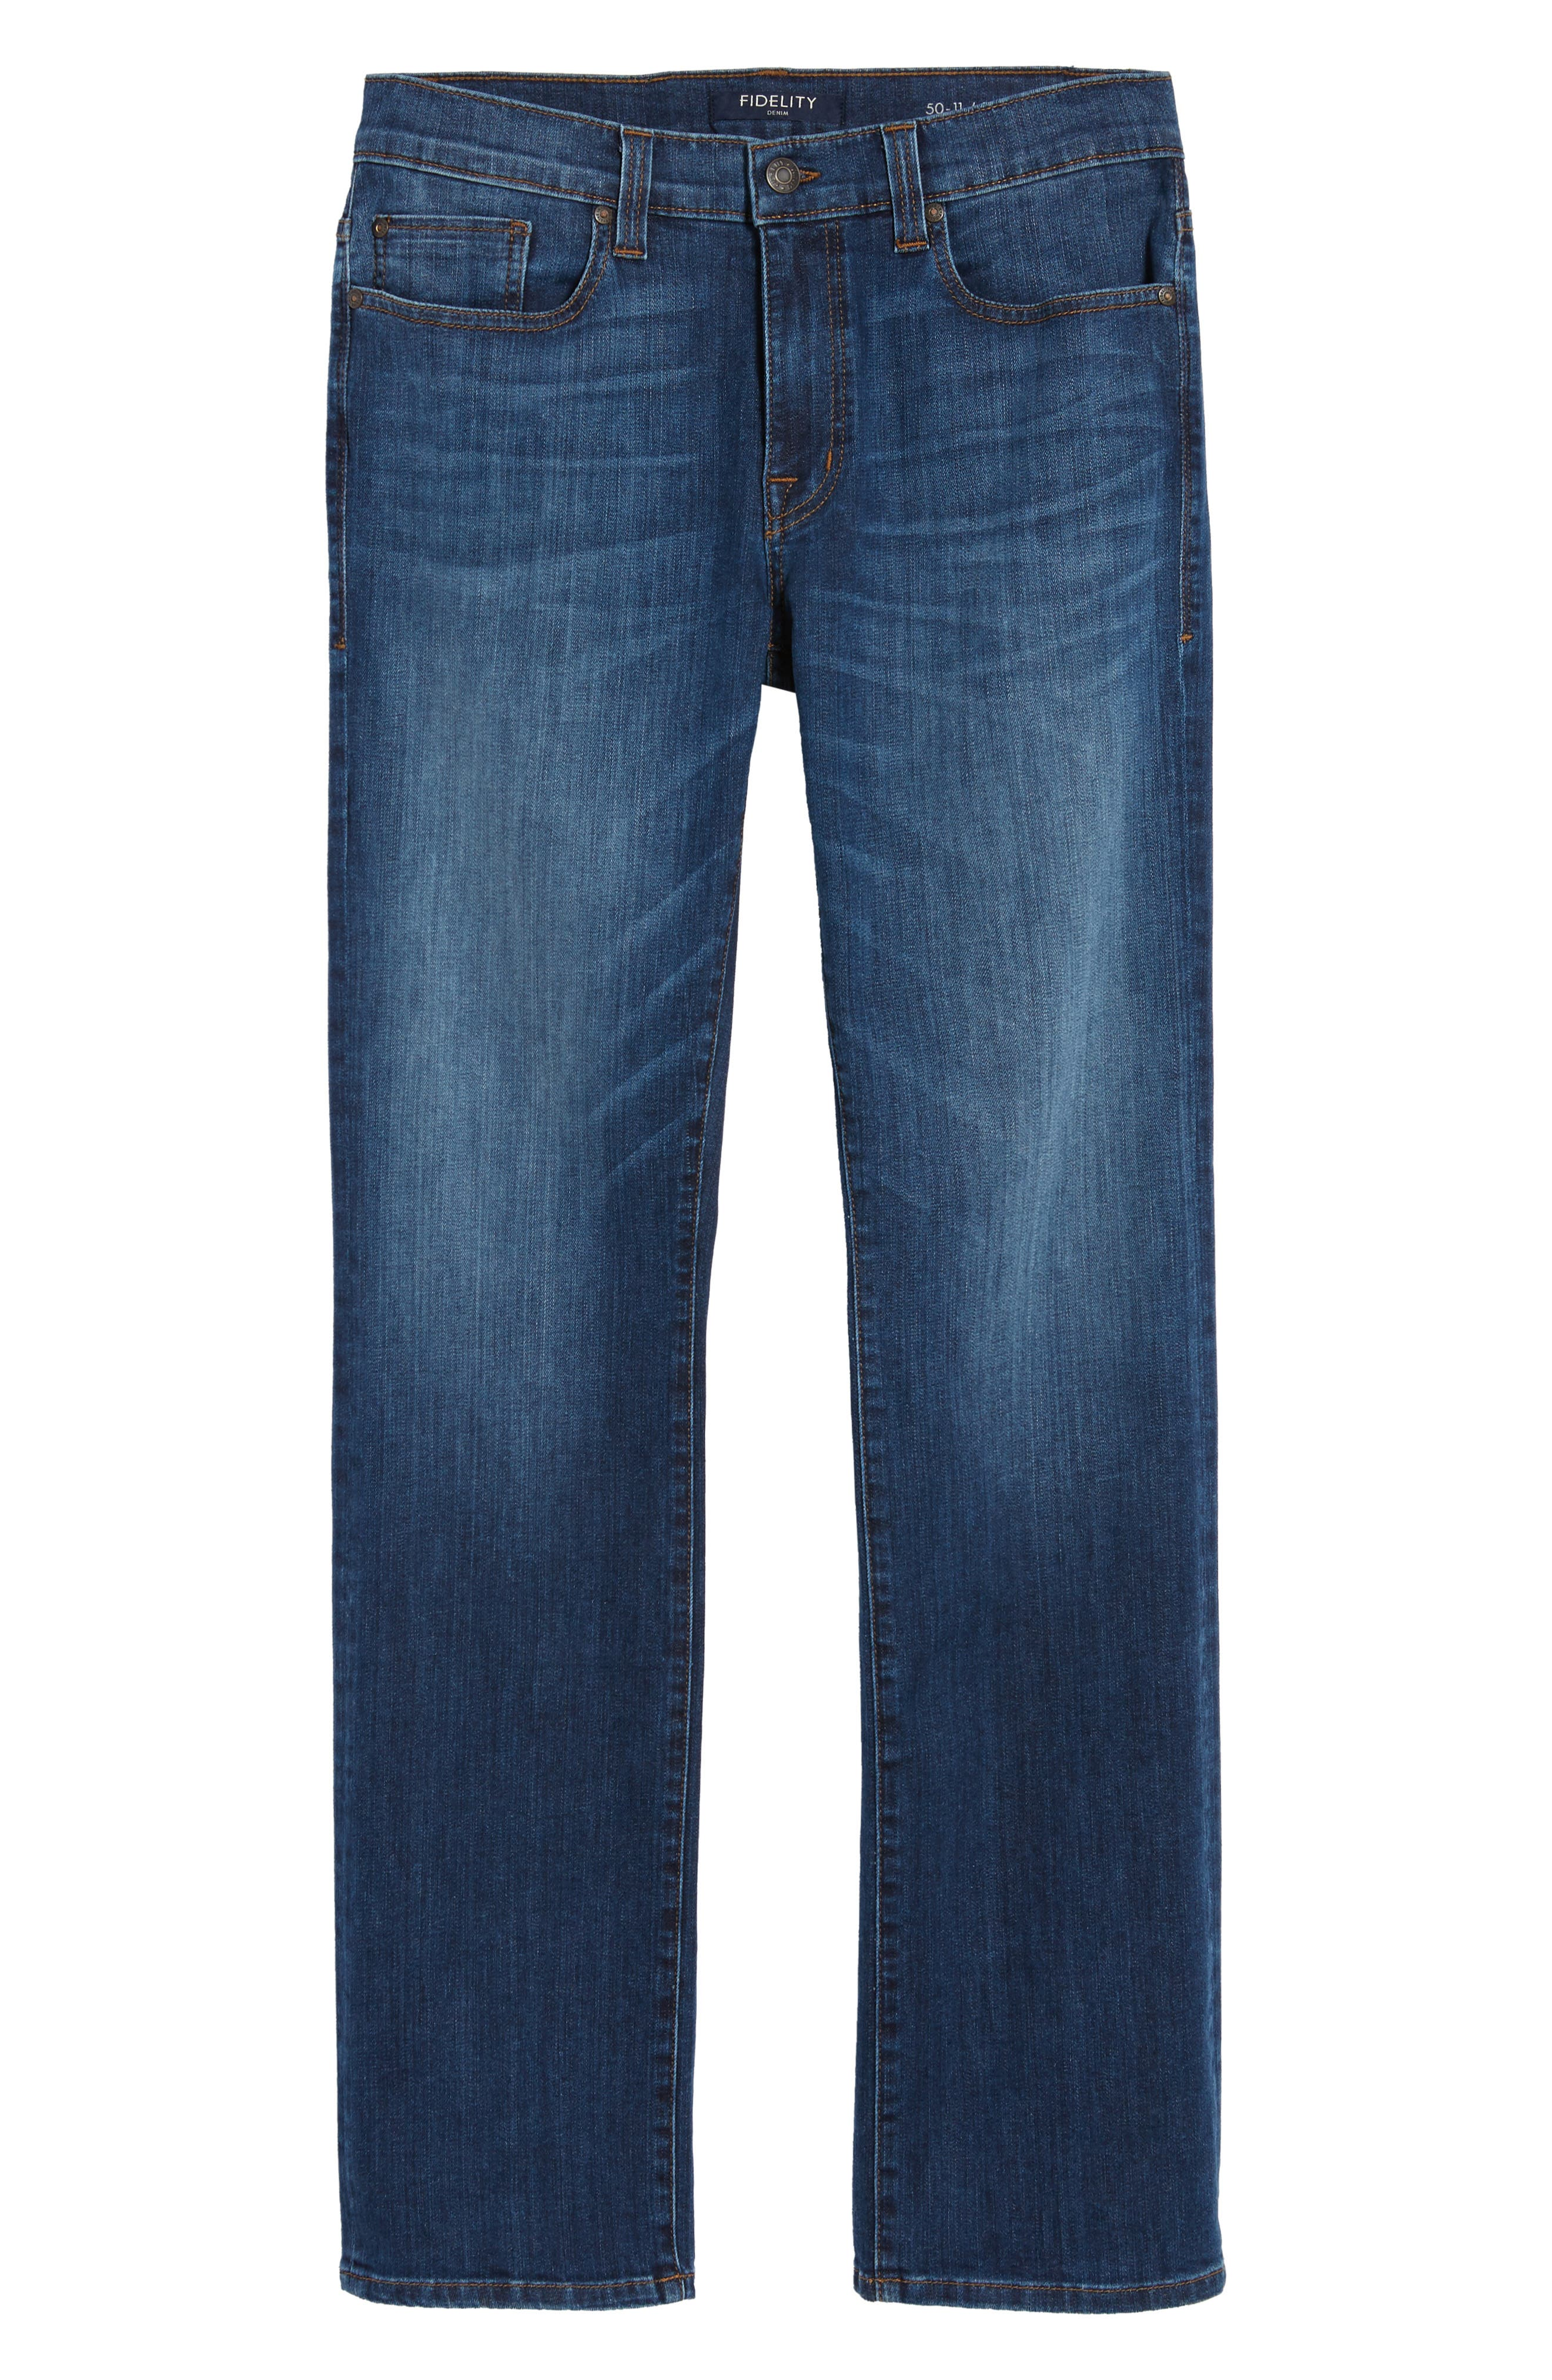 5011 Relaxed Fit Jeans,                             Alternate thumbnail 6, color,                             LIVERPOOL